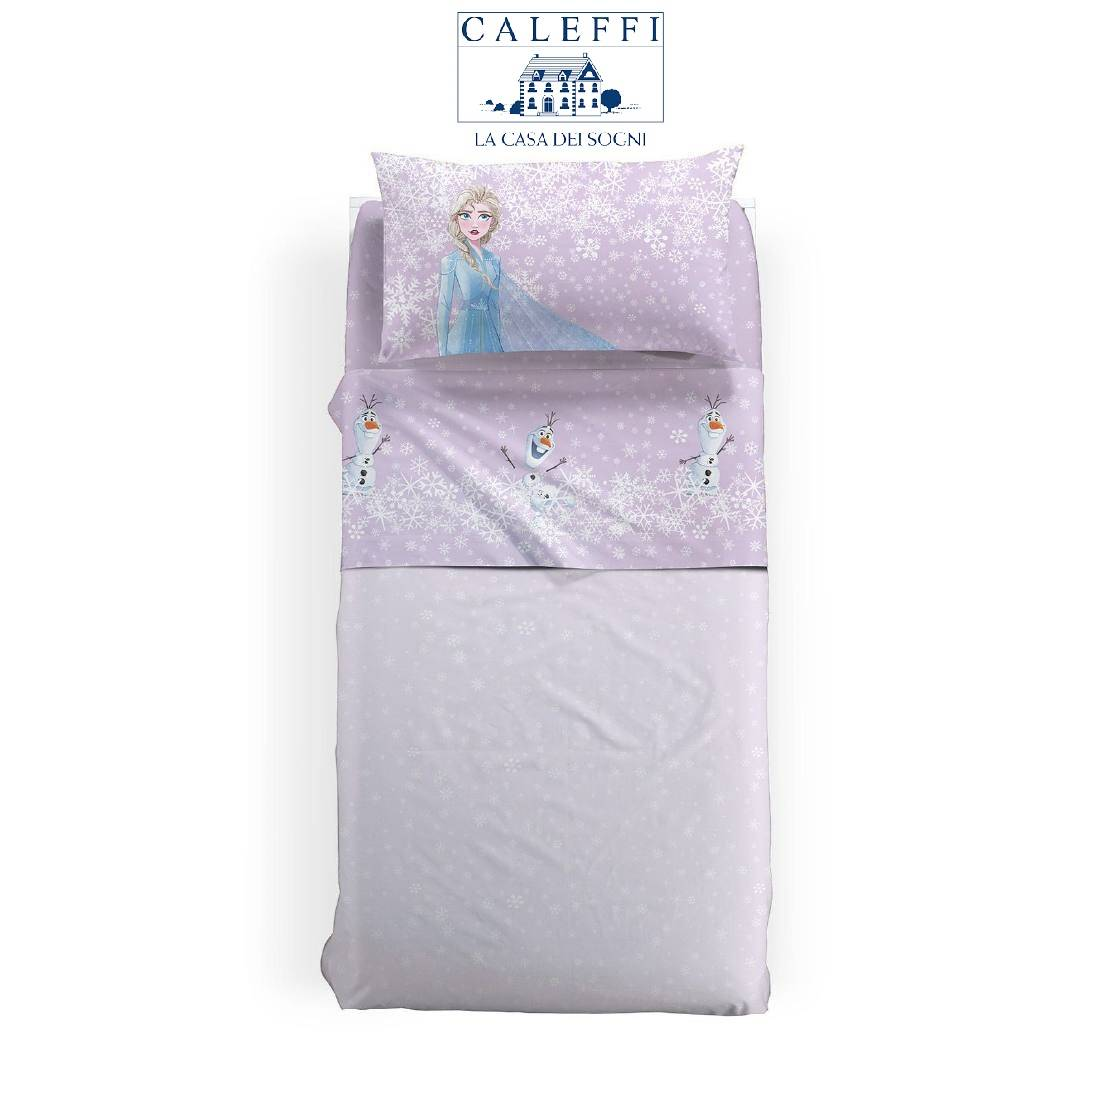 Lenzuola Frozen Disney Caleffi Singola Frozen Magic Puro Cotone